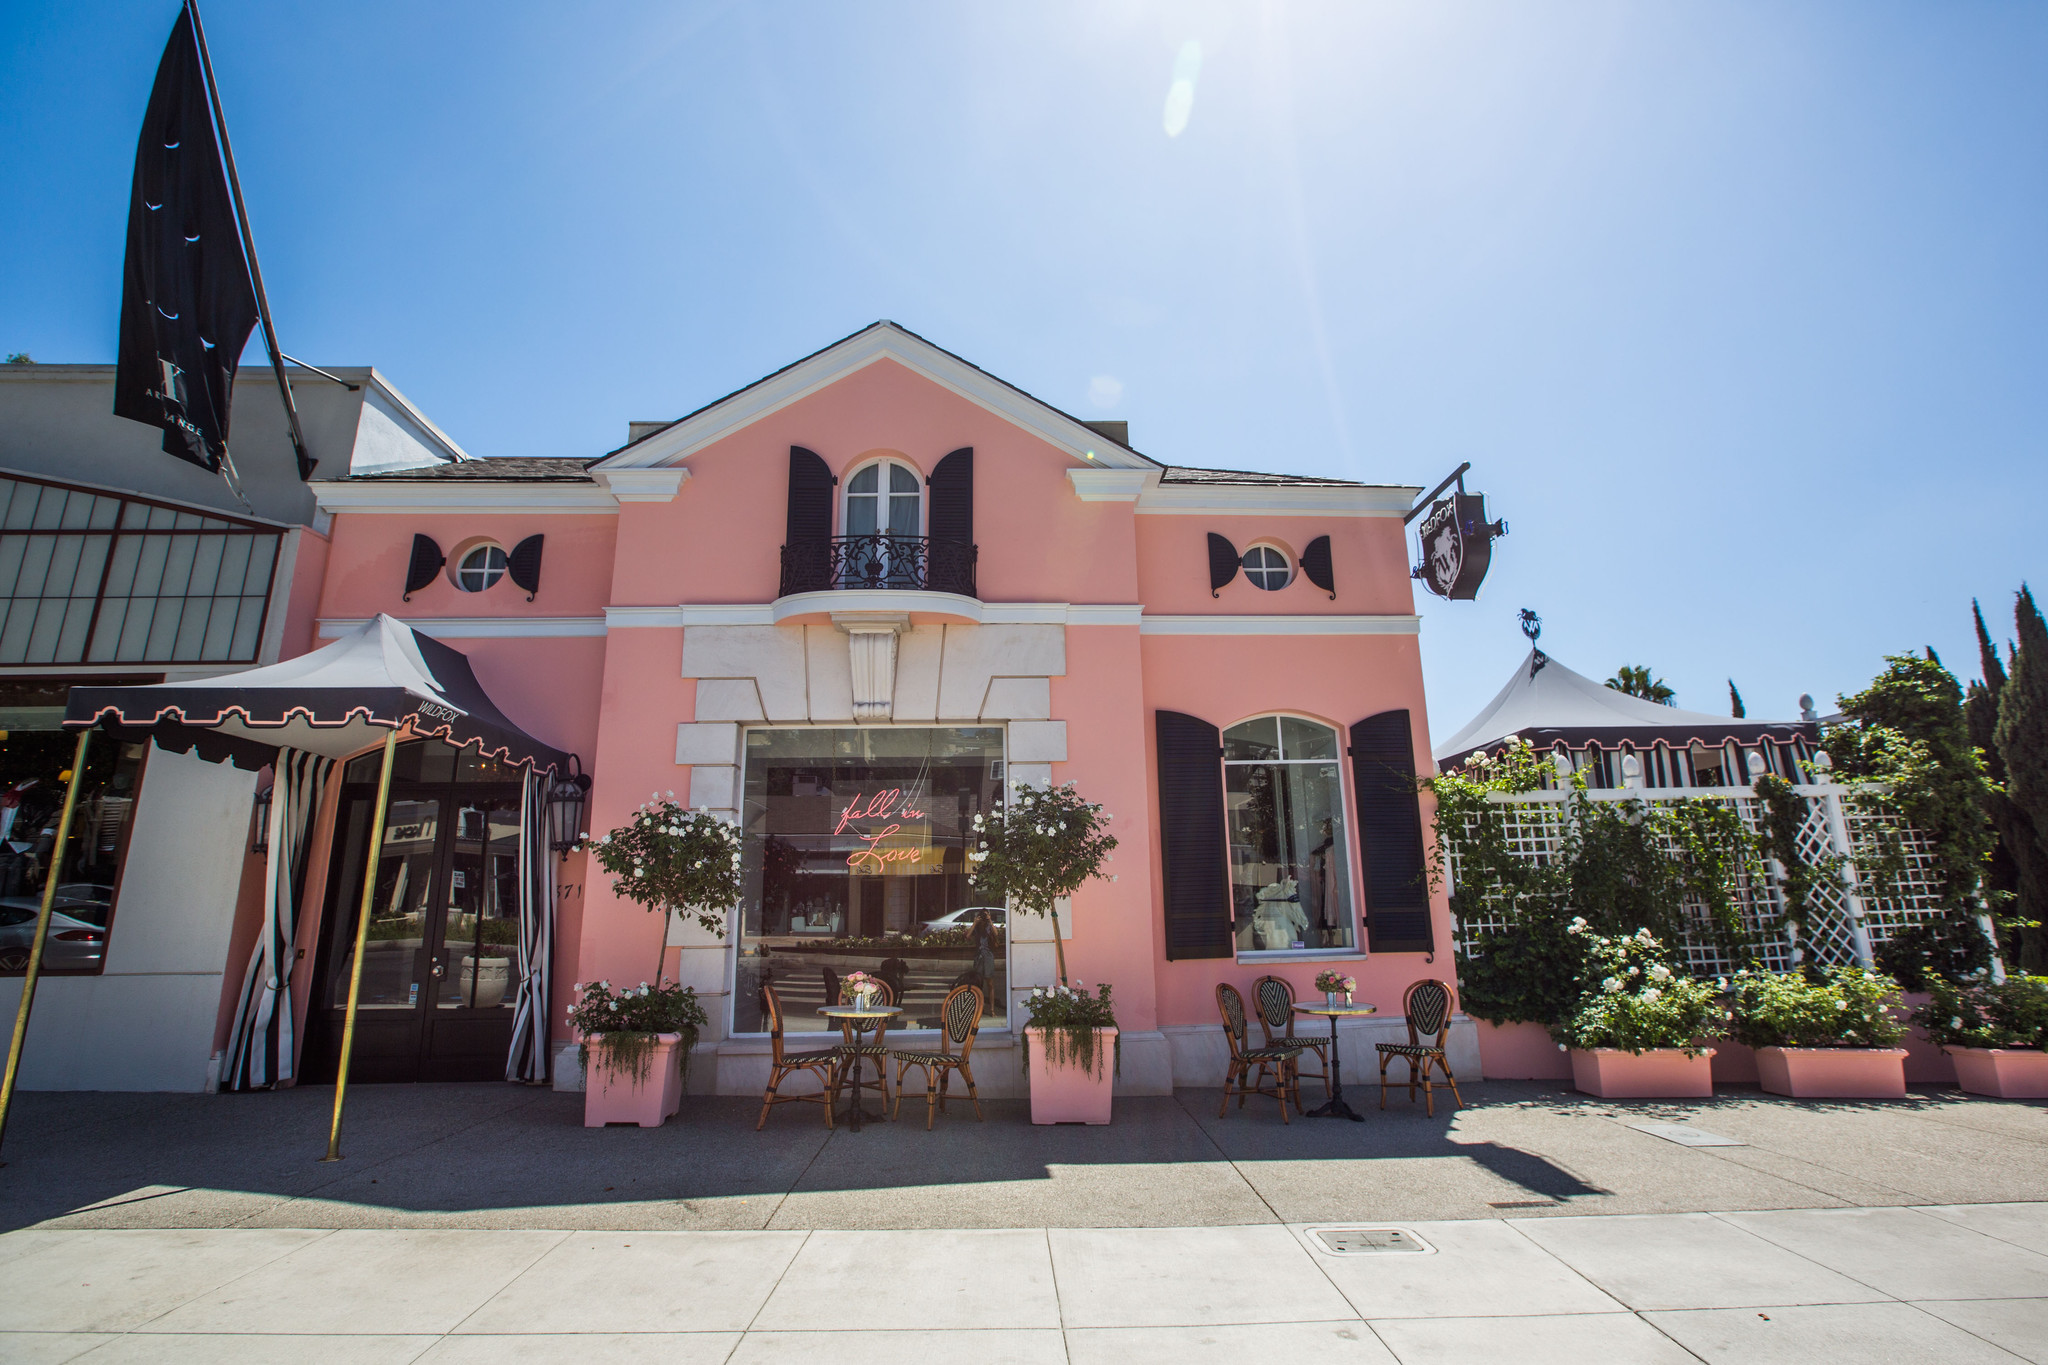 The dreamy pink exterior of the Wildfox flagship store on Sunset Boulevard in West Hollywood.